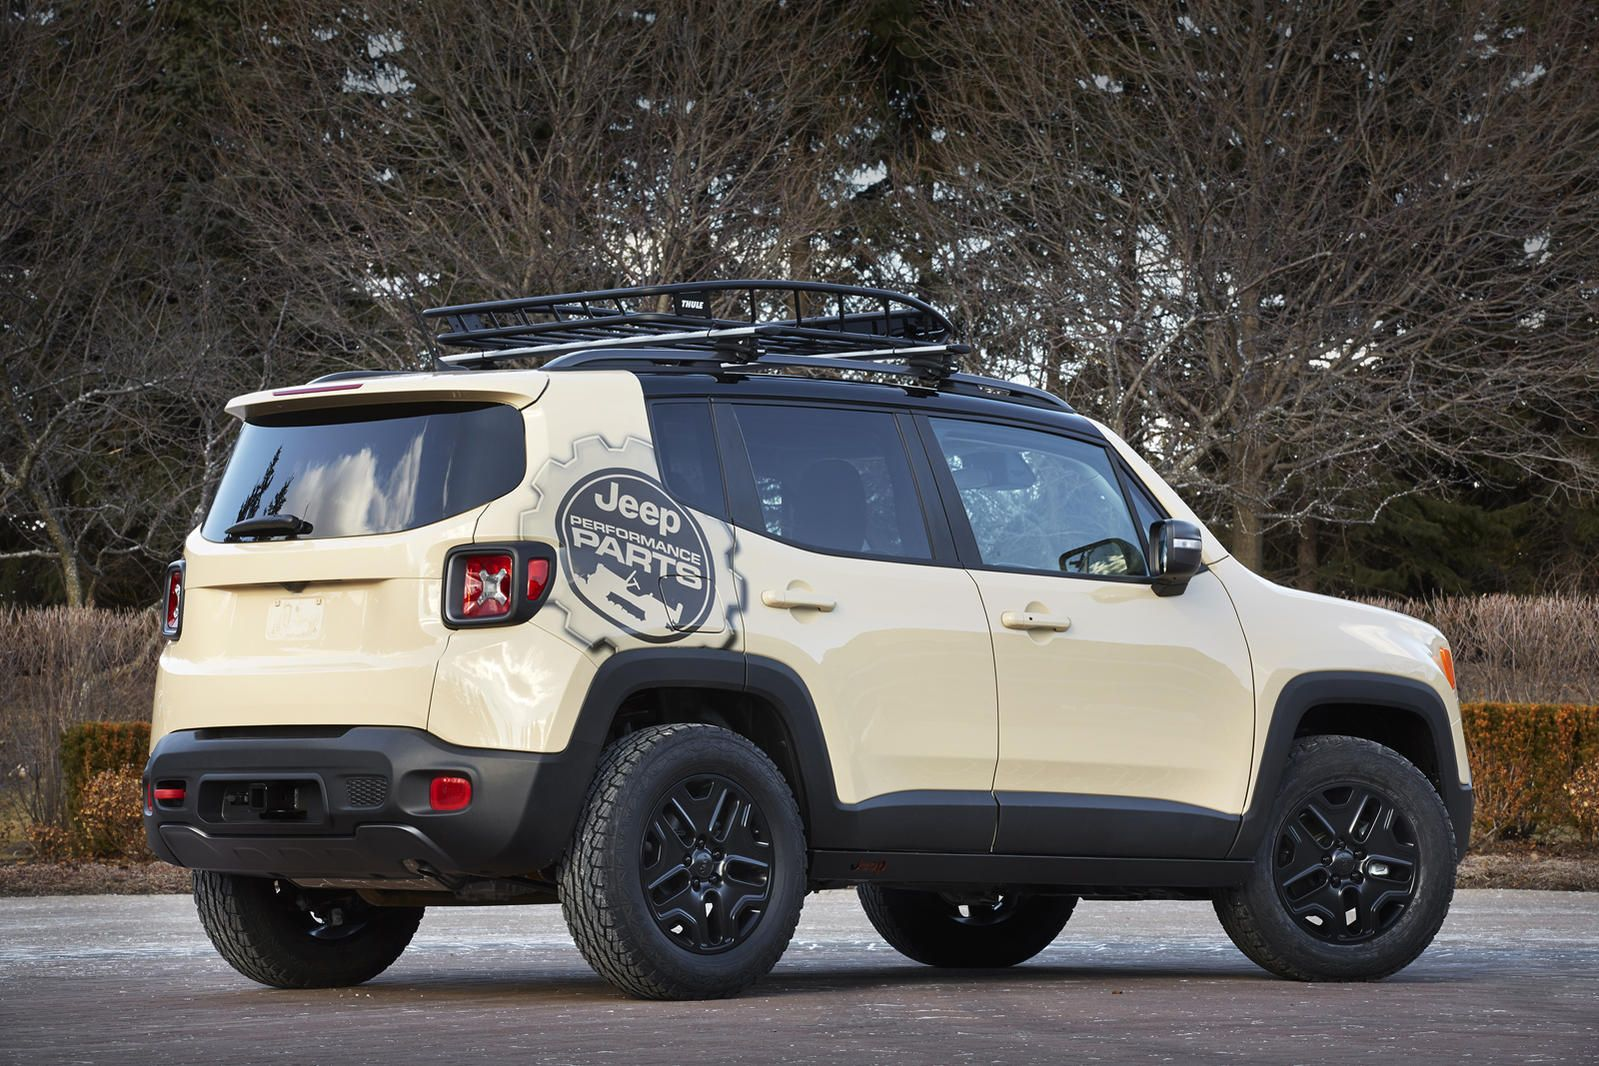 Renegade Desert Hawk Jeep Renegade Jeep Jeep Concept